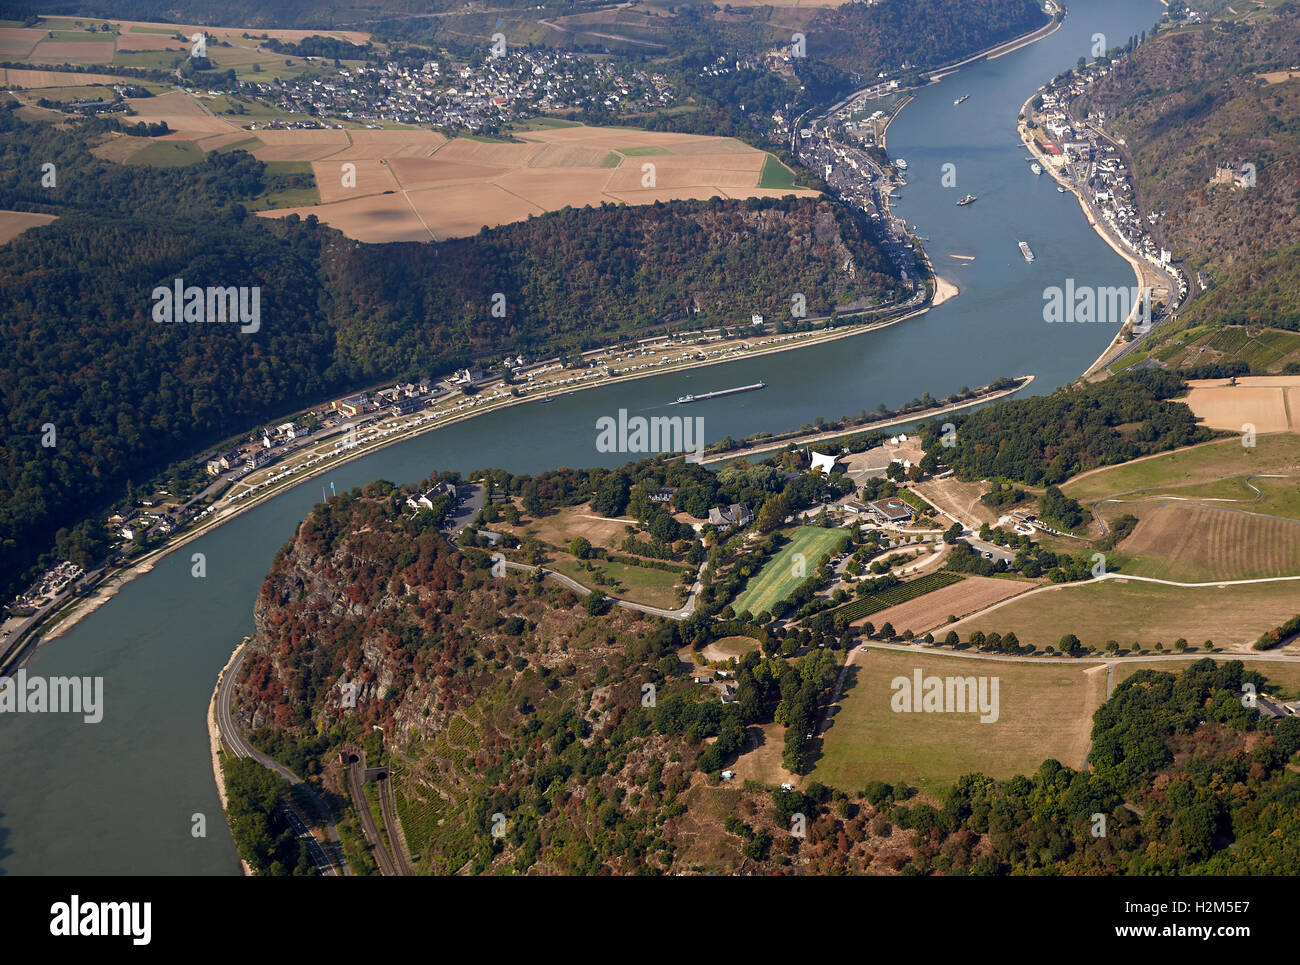 St. Goarshausen, Germany. 23rd Sep, 2016. An aerial view shows the Loreley plateau by the Loreley rock above the Stock Photo